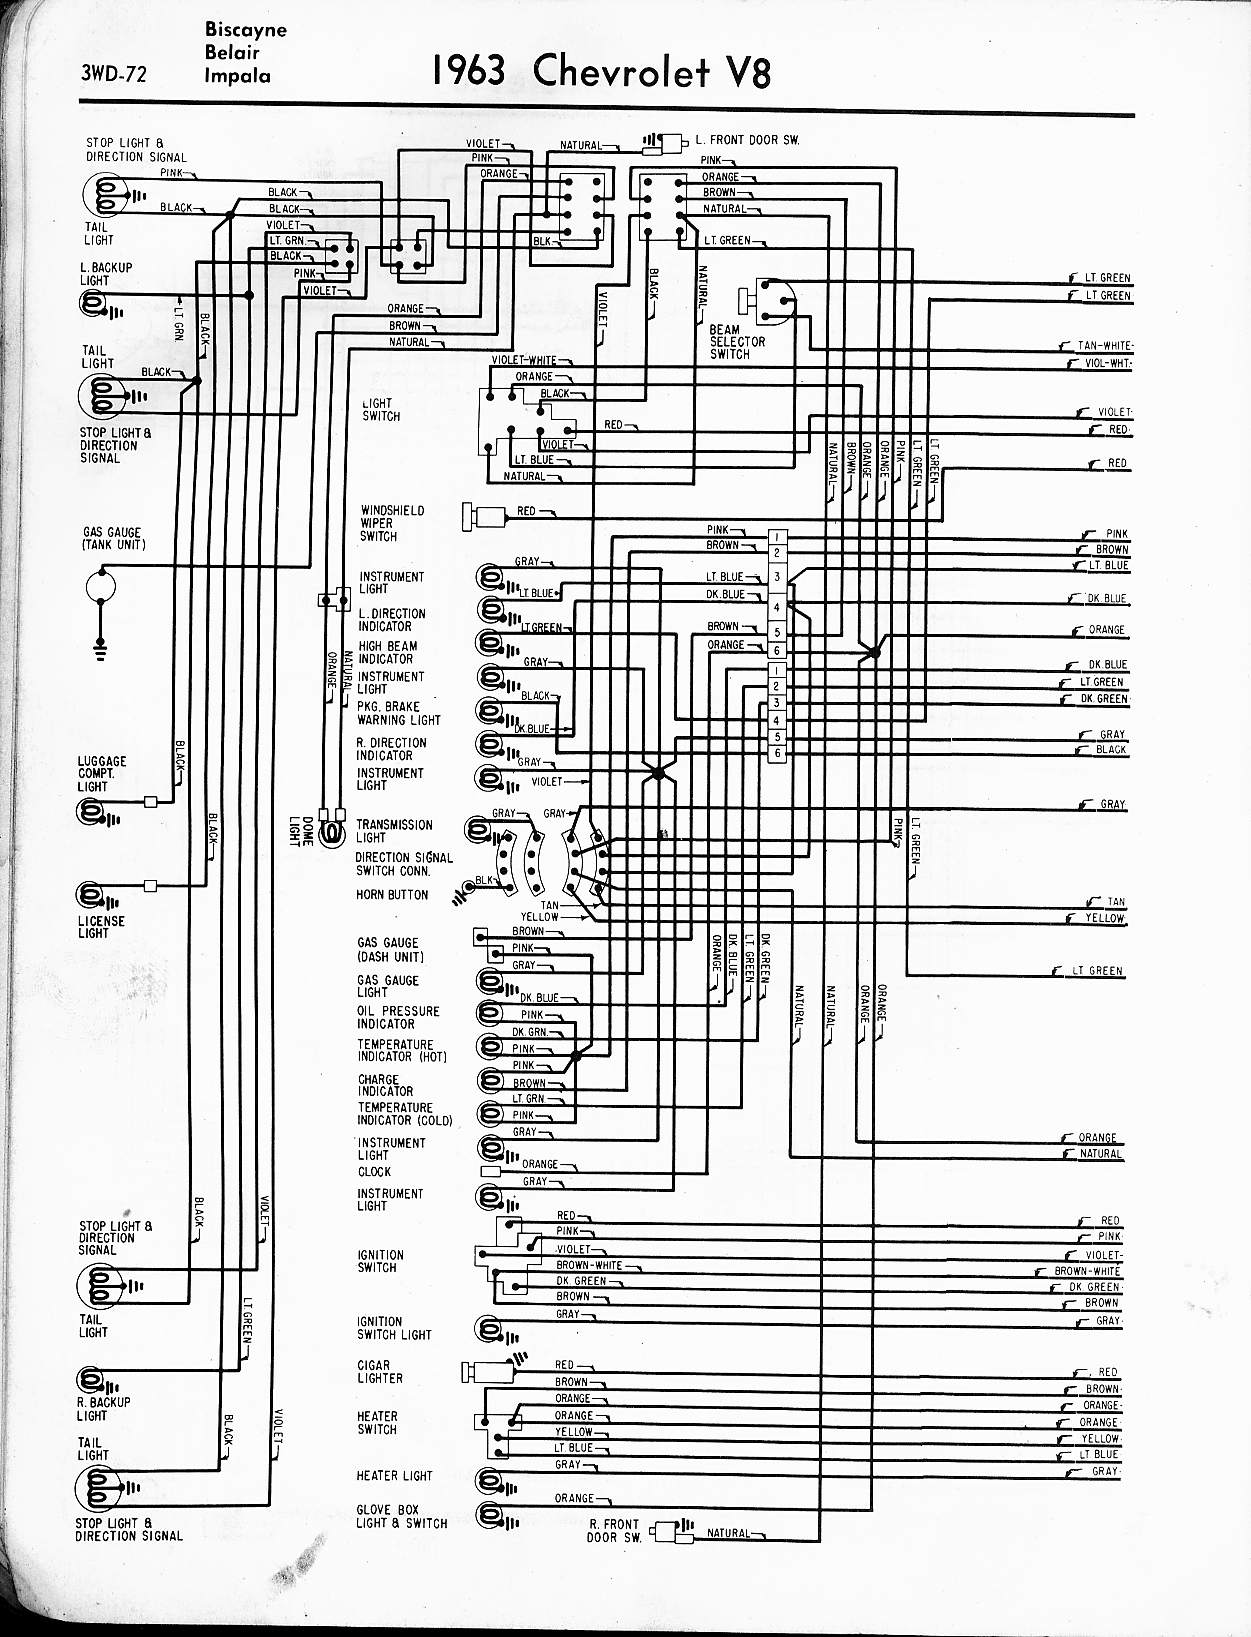 63 chevrolet alternator wiring diagram